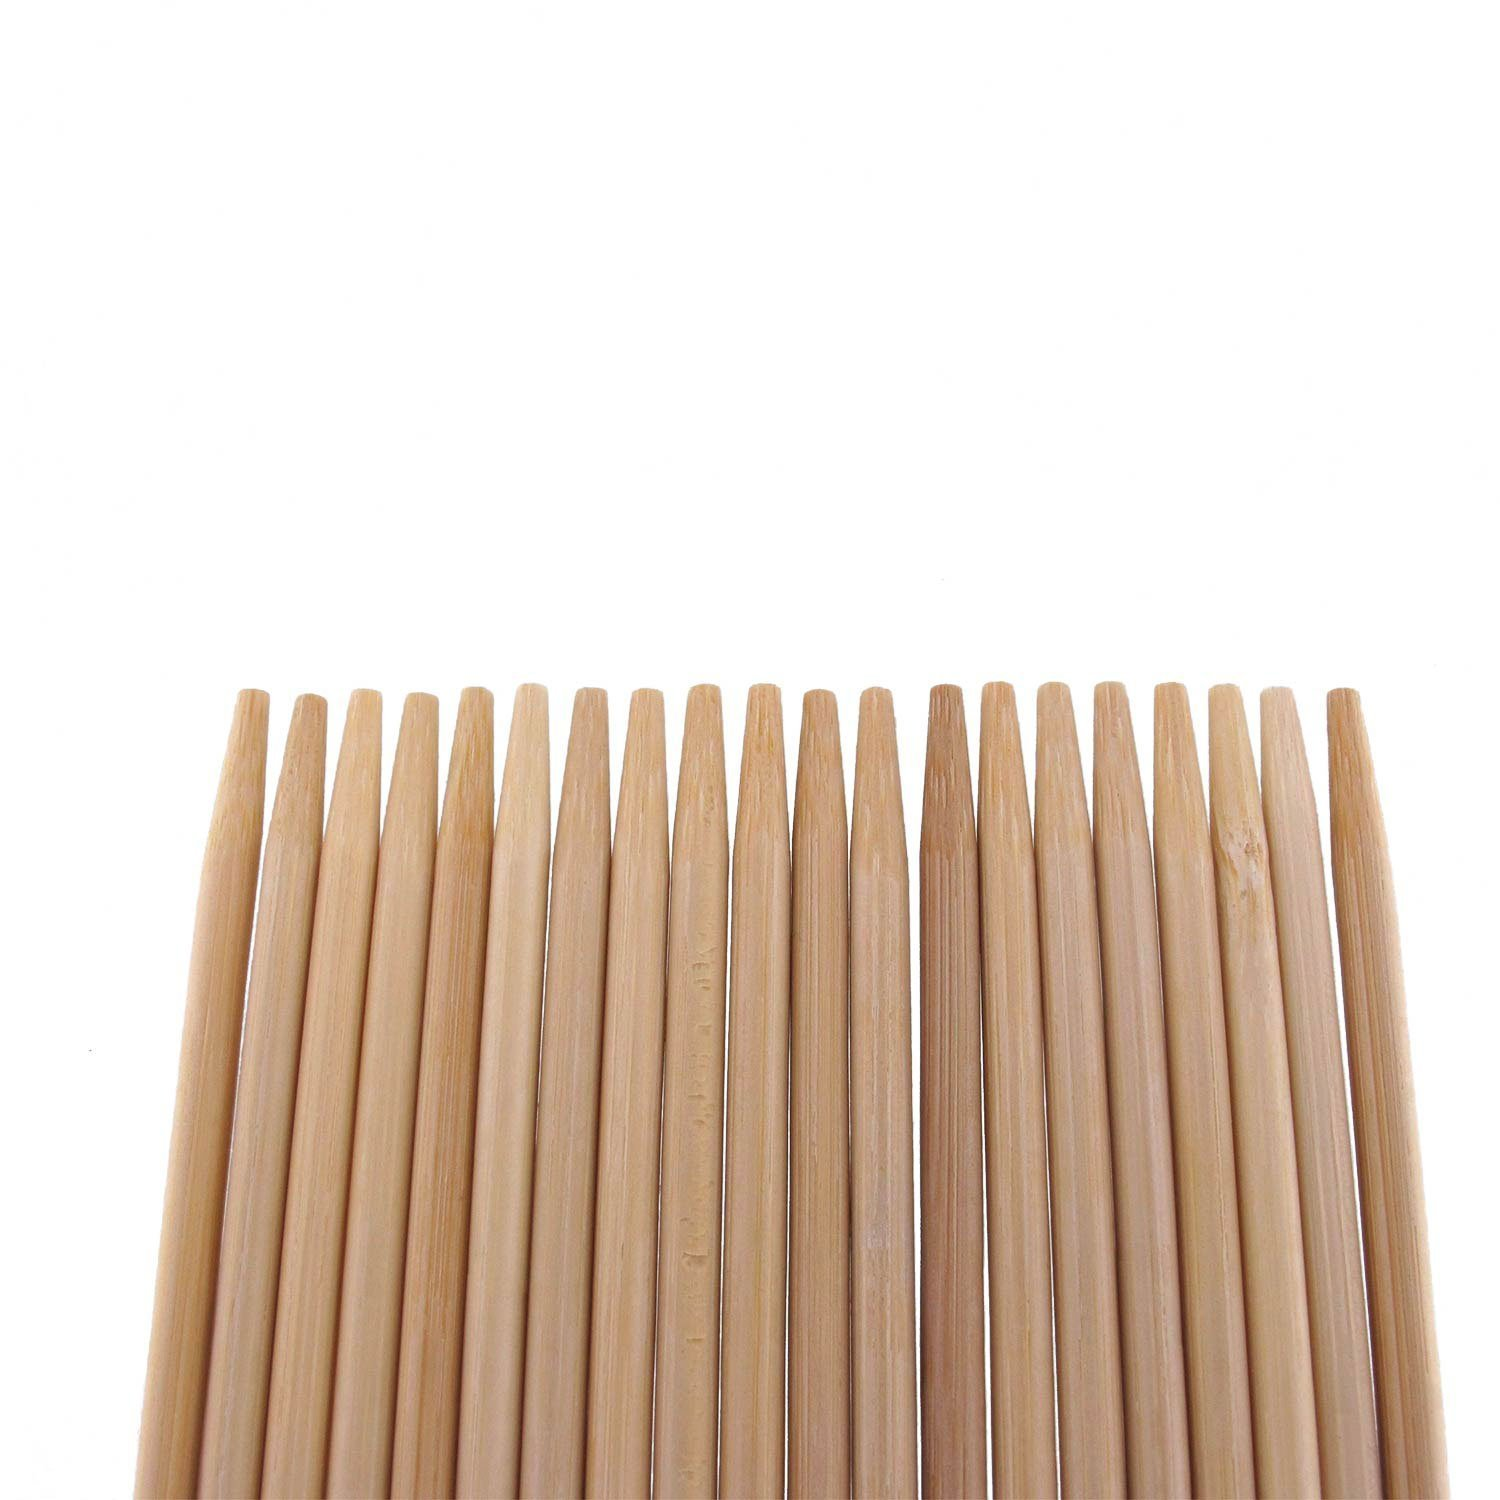 """BambooMN Premium 15"""" Inch (1.25ft) Long 5mm Thick Safe Multipurpose Tornado Twist Potato Bamboo Skewers, 100 Pieces Perfect for Camping or Outdoor Party, Garden Sticks"""